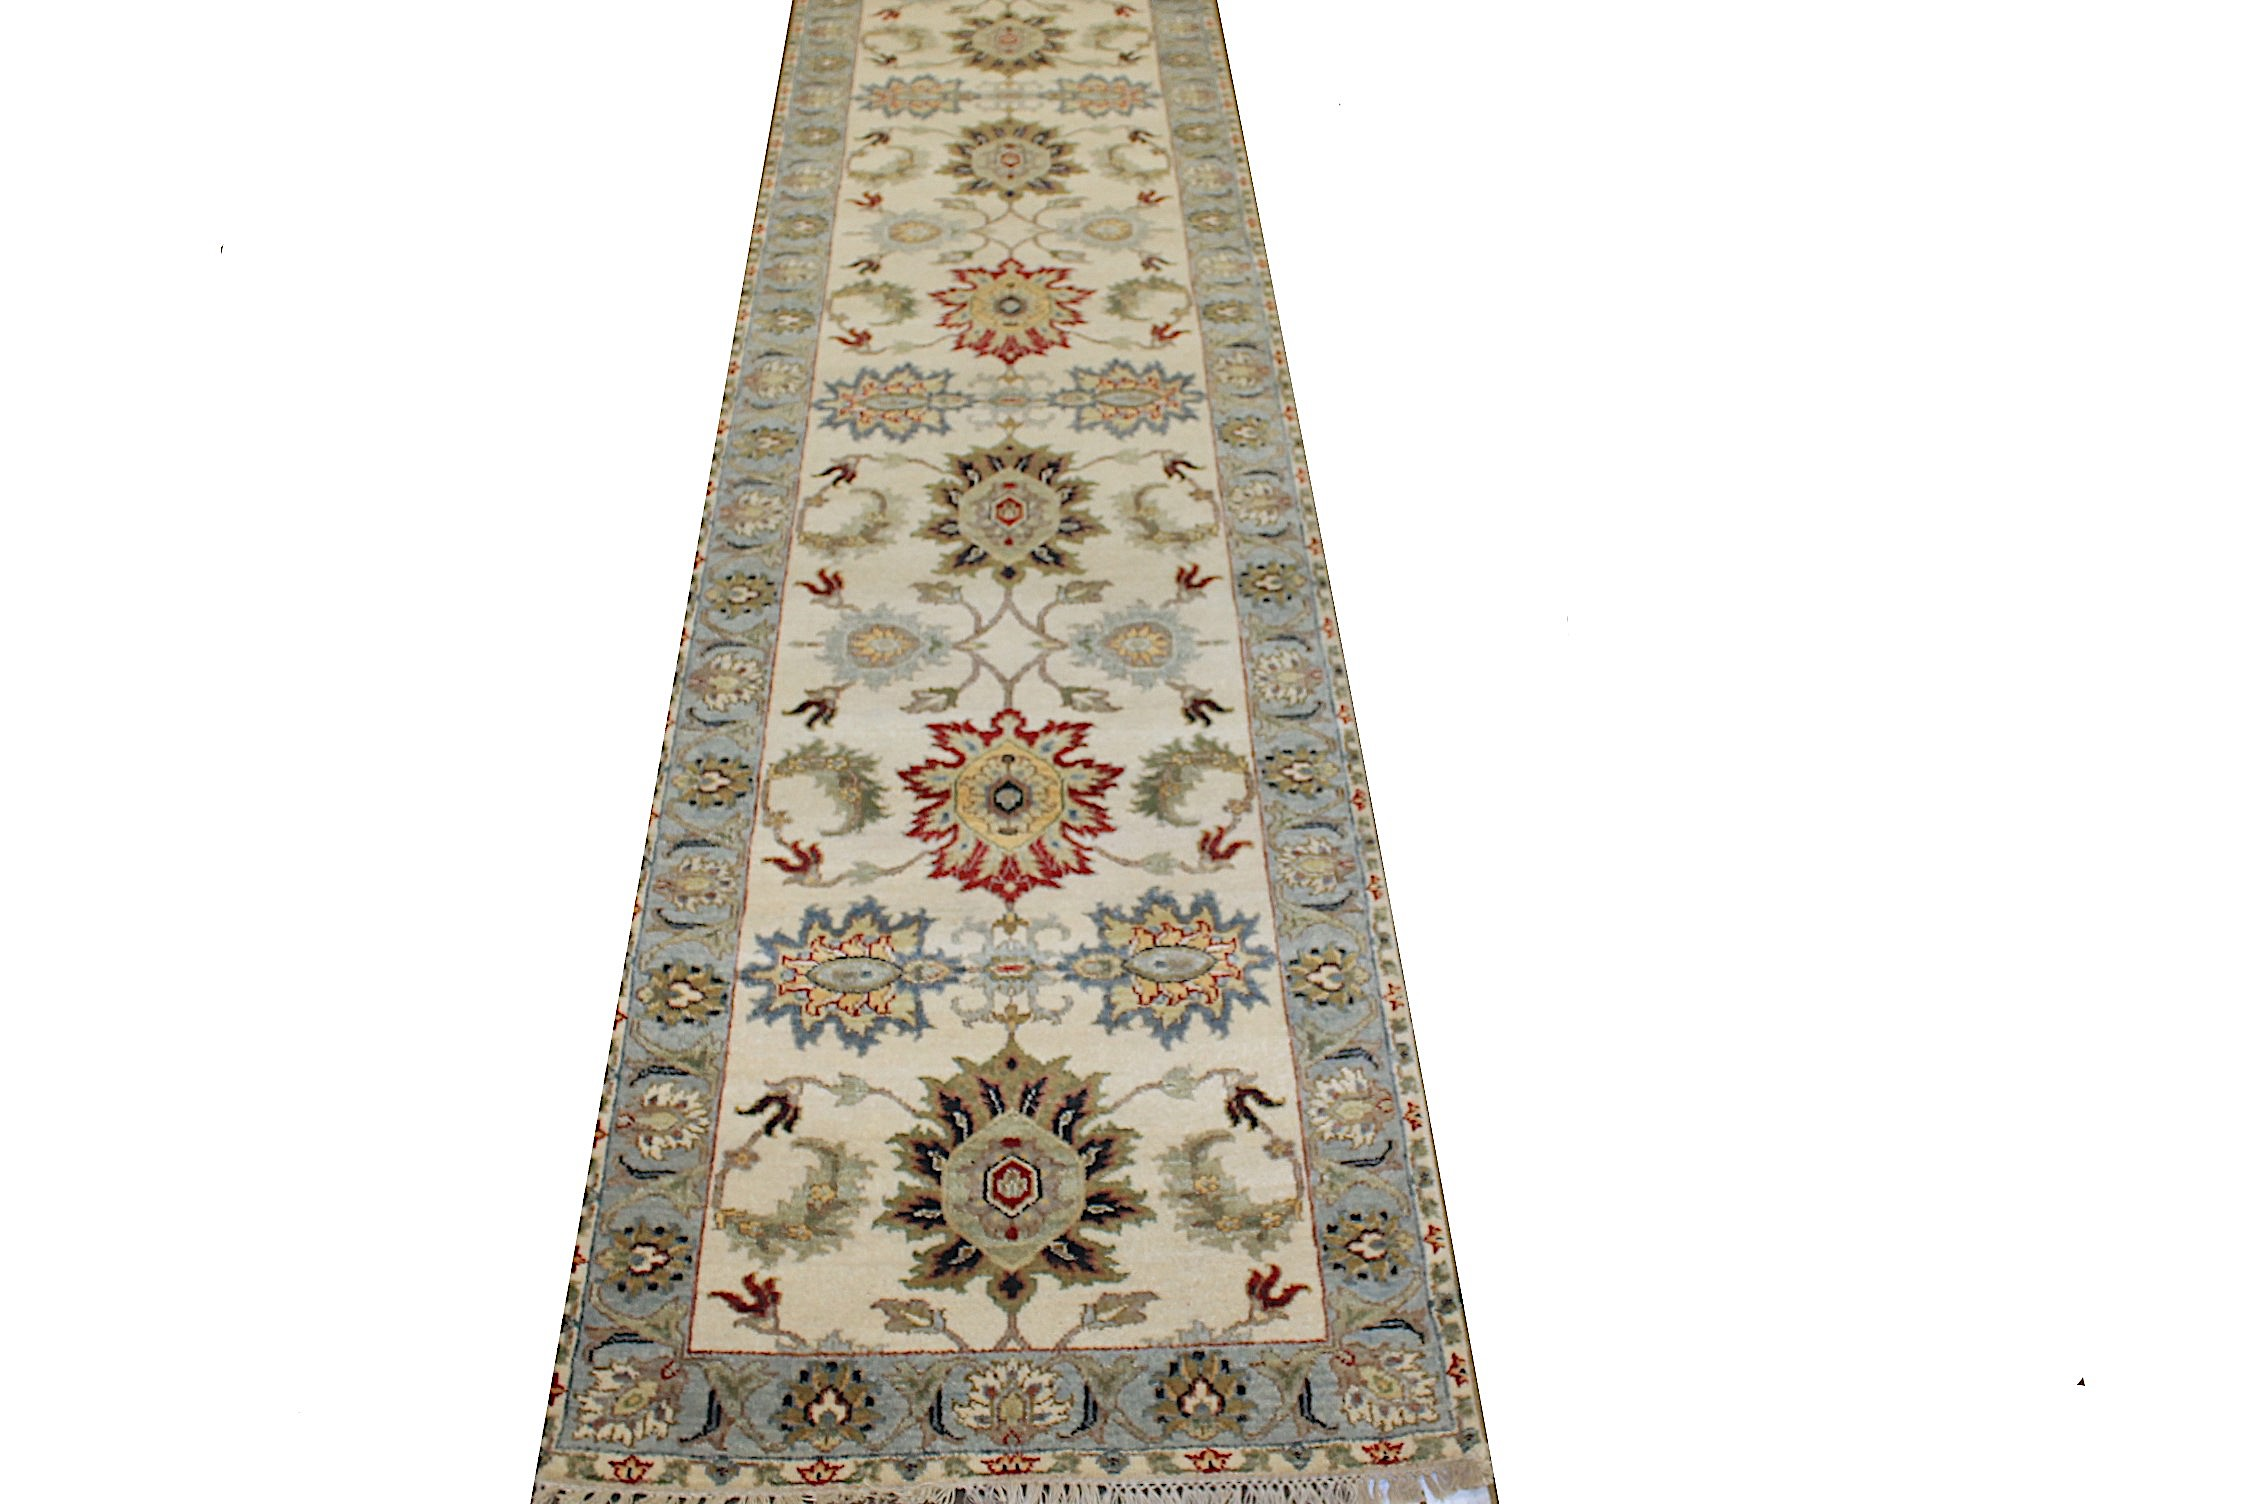 13 ft. & Longer Runner Traditional Hand Knotted Wool Area Rug - MR025247